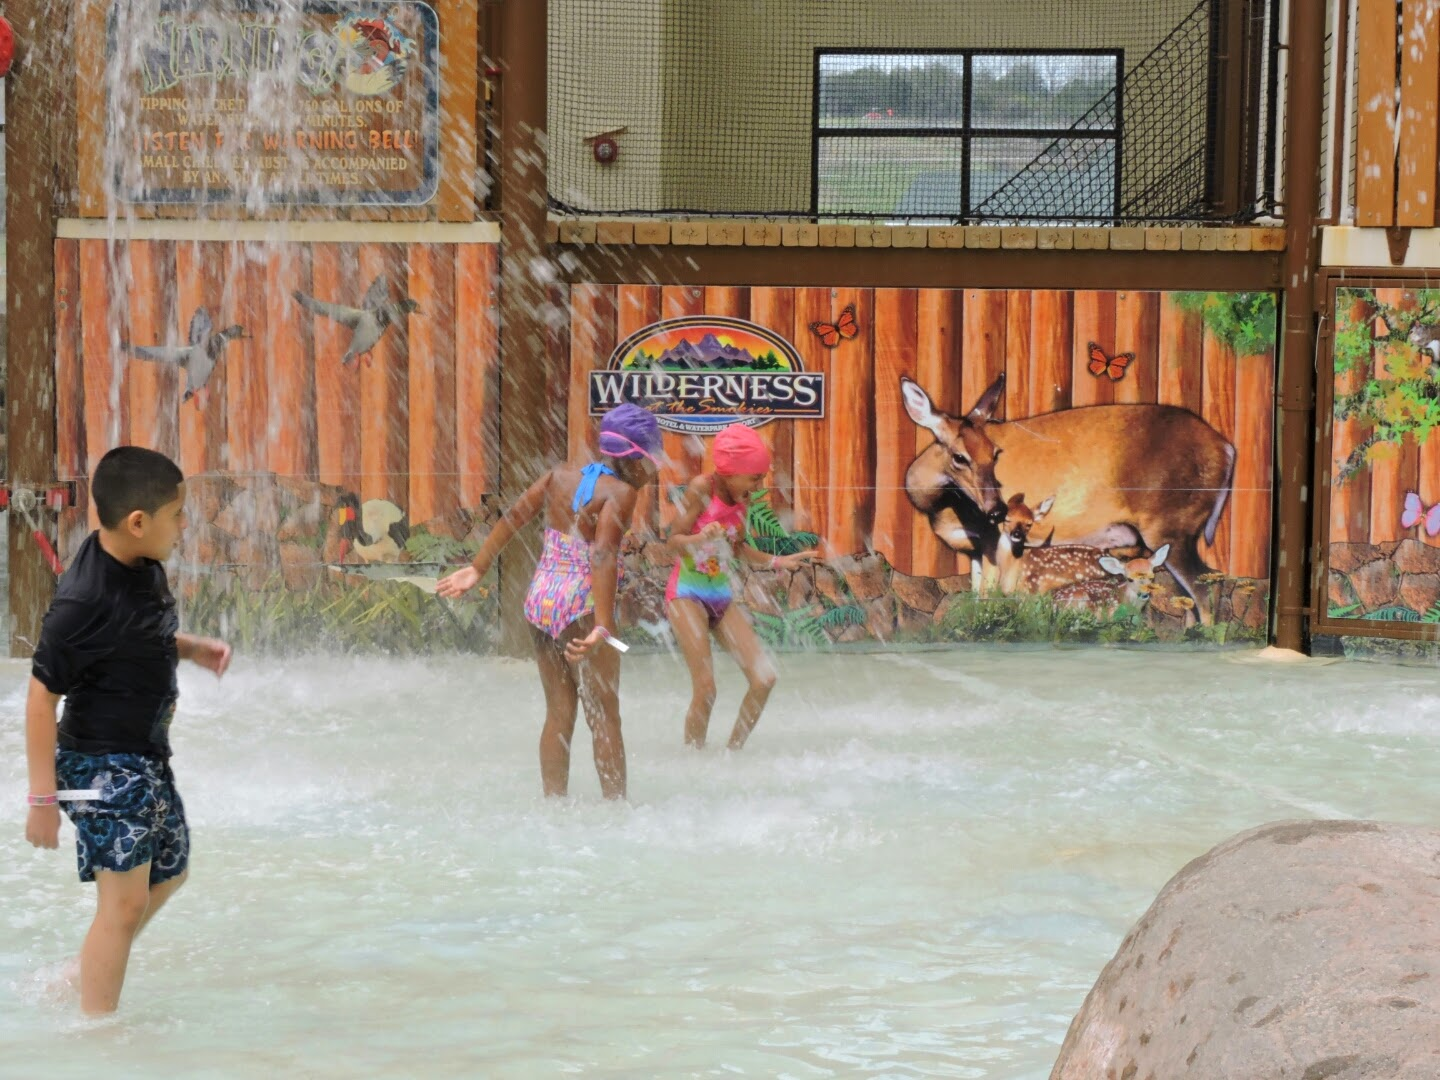 Spring Break at the Smoky Mountains Tennessee  (Wilderness at the Smokies indoor pool)  via www.productreviewmom.com